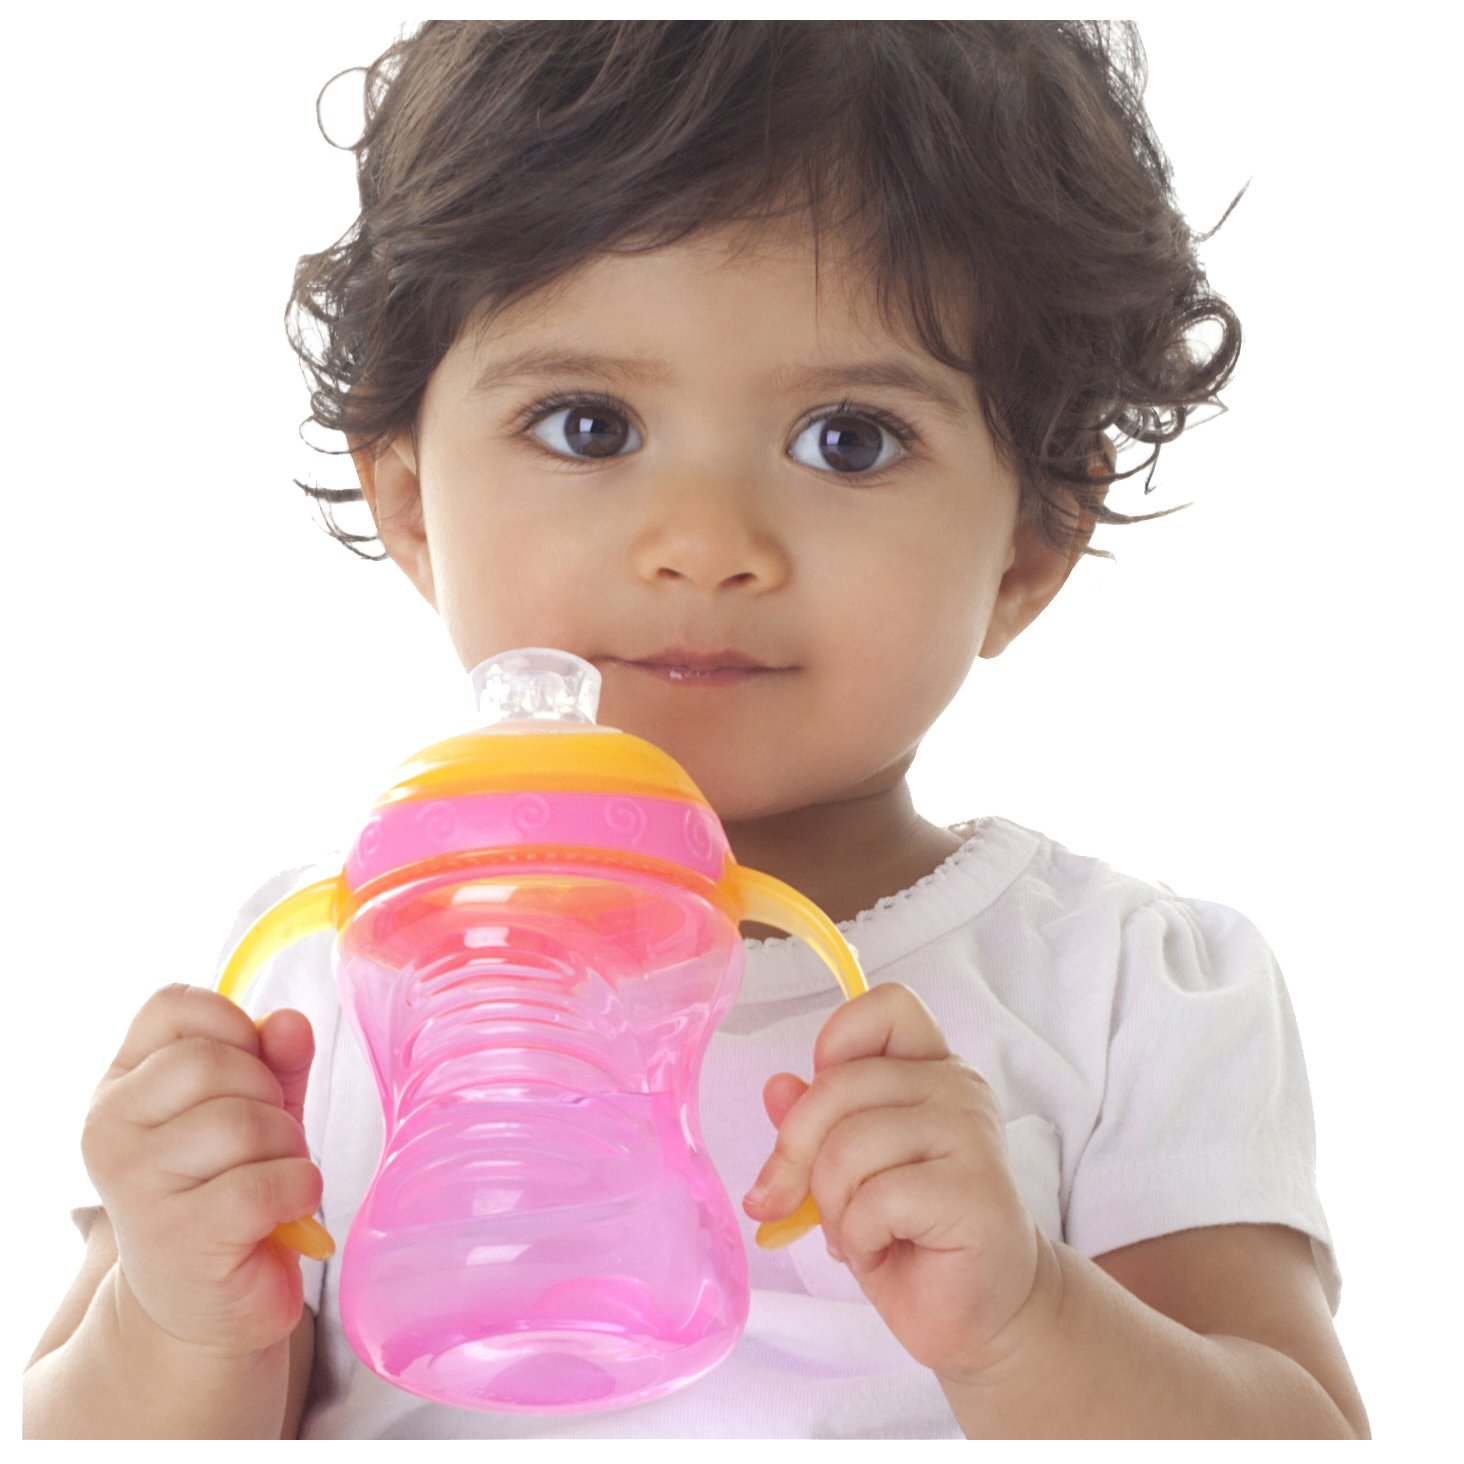 Nuby 2-Pack Two-Handle No-Spill Super Spout Grip N' Sip Cup, 8 Ounce, Colors May Vary 10056